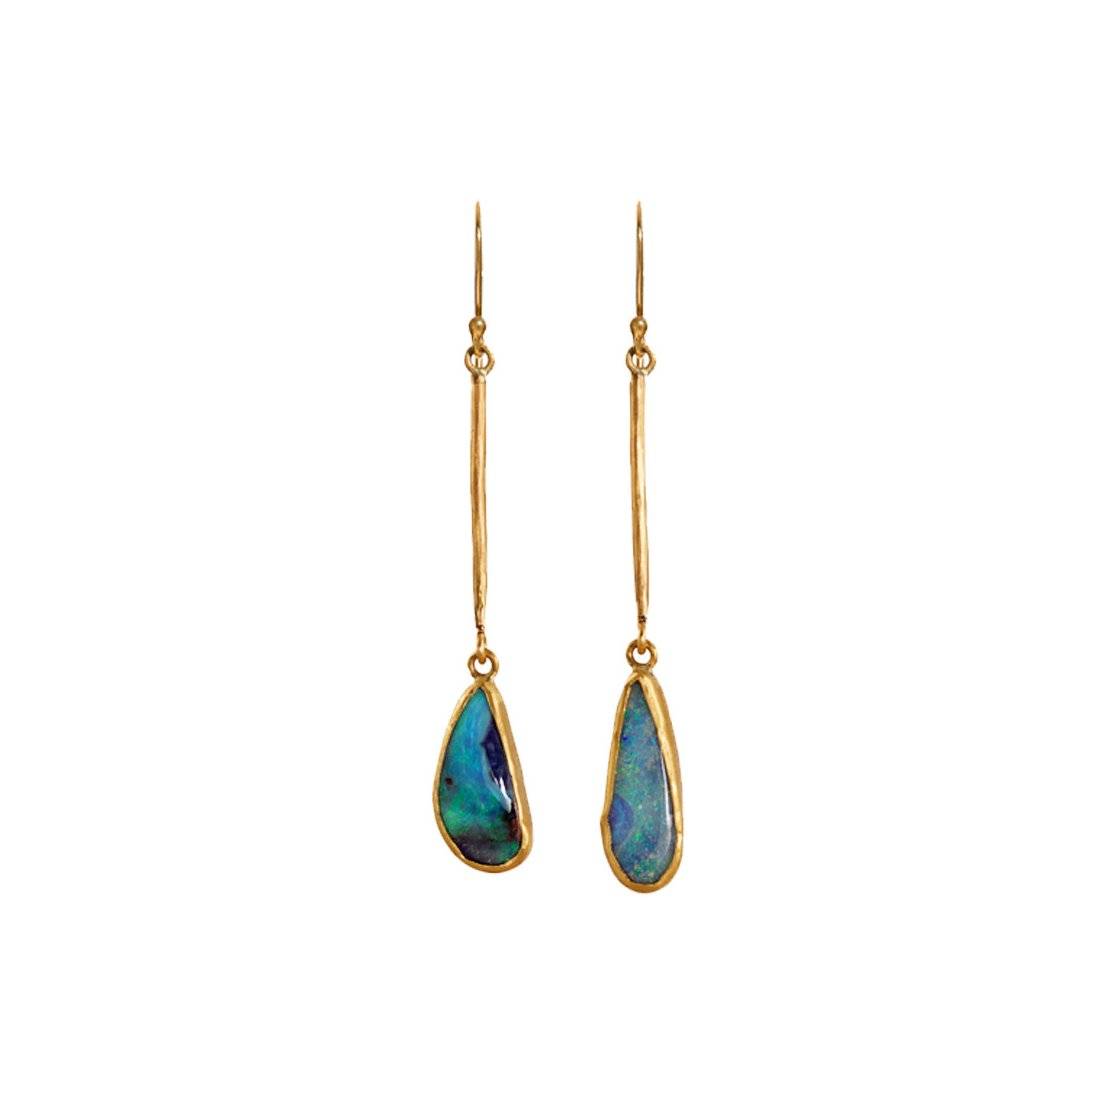 Margery Hirschey Boulder Opal Earrings - Earrings - Broken English Jewelry